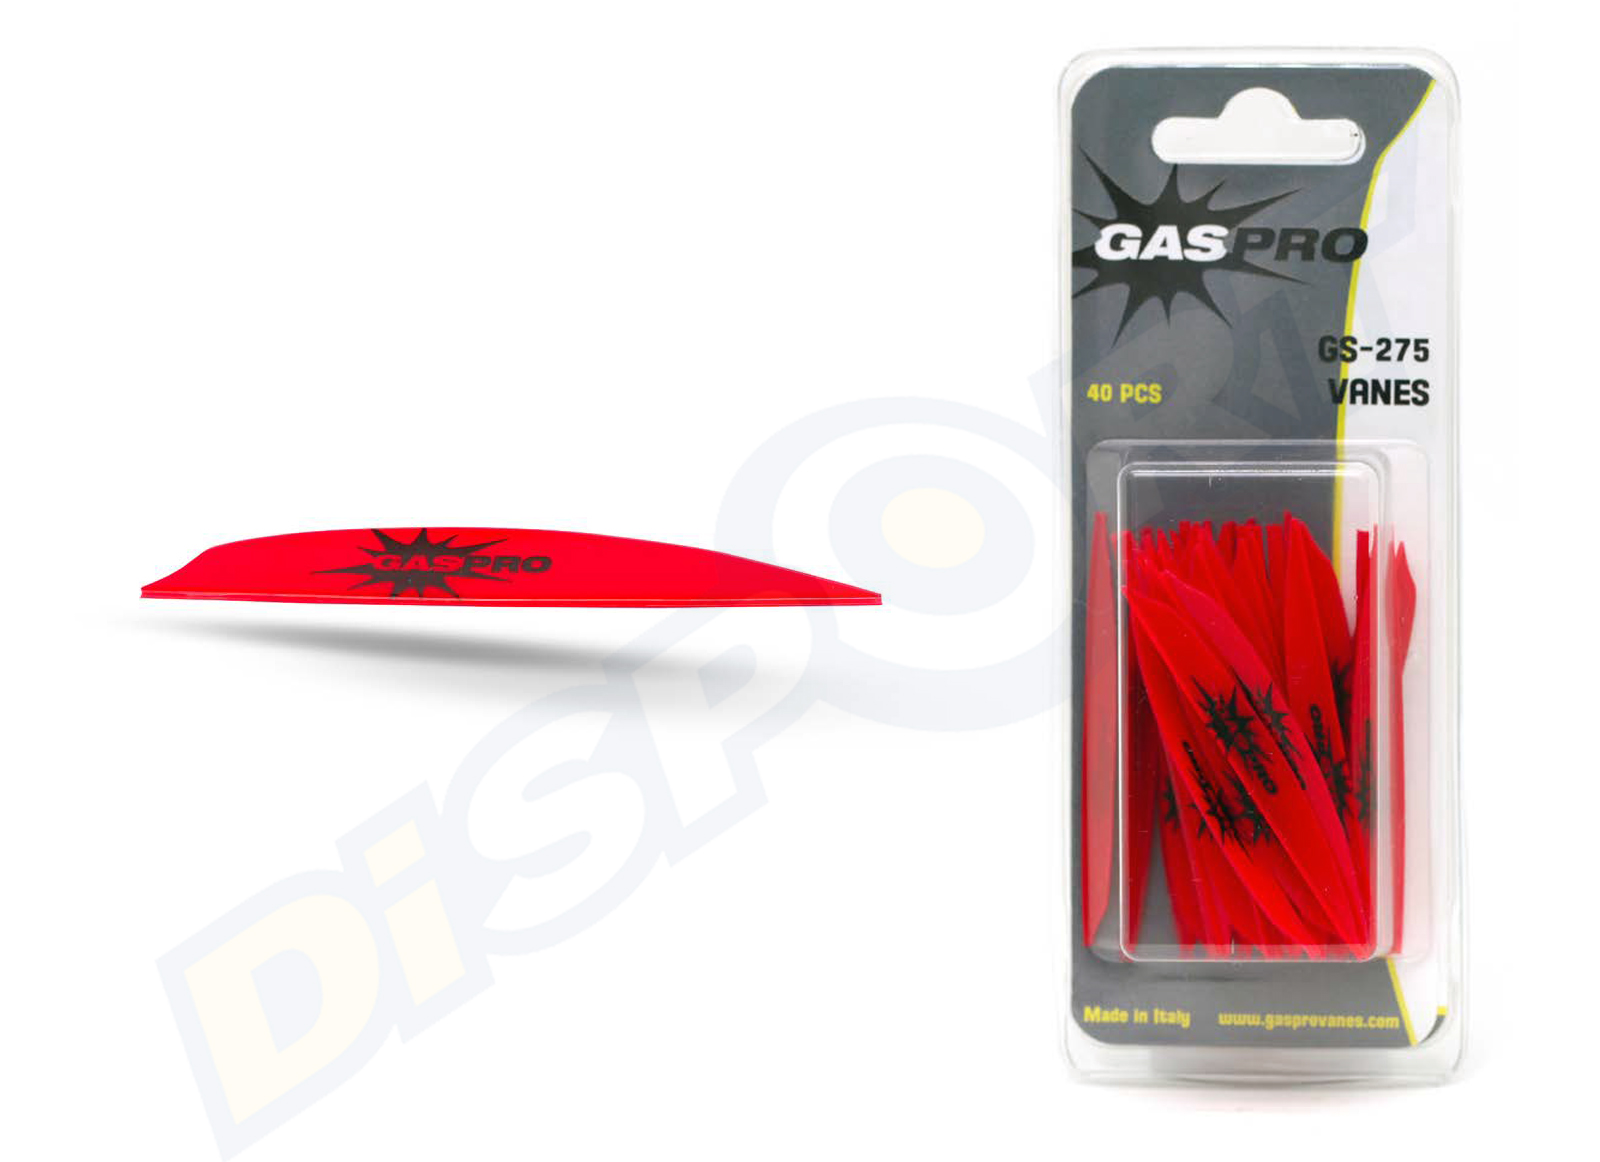 GAS PRO VANES GS-275 WITHOUT GLUE